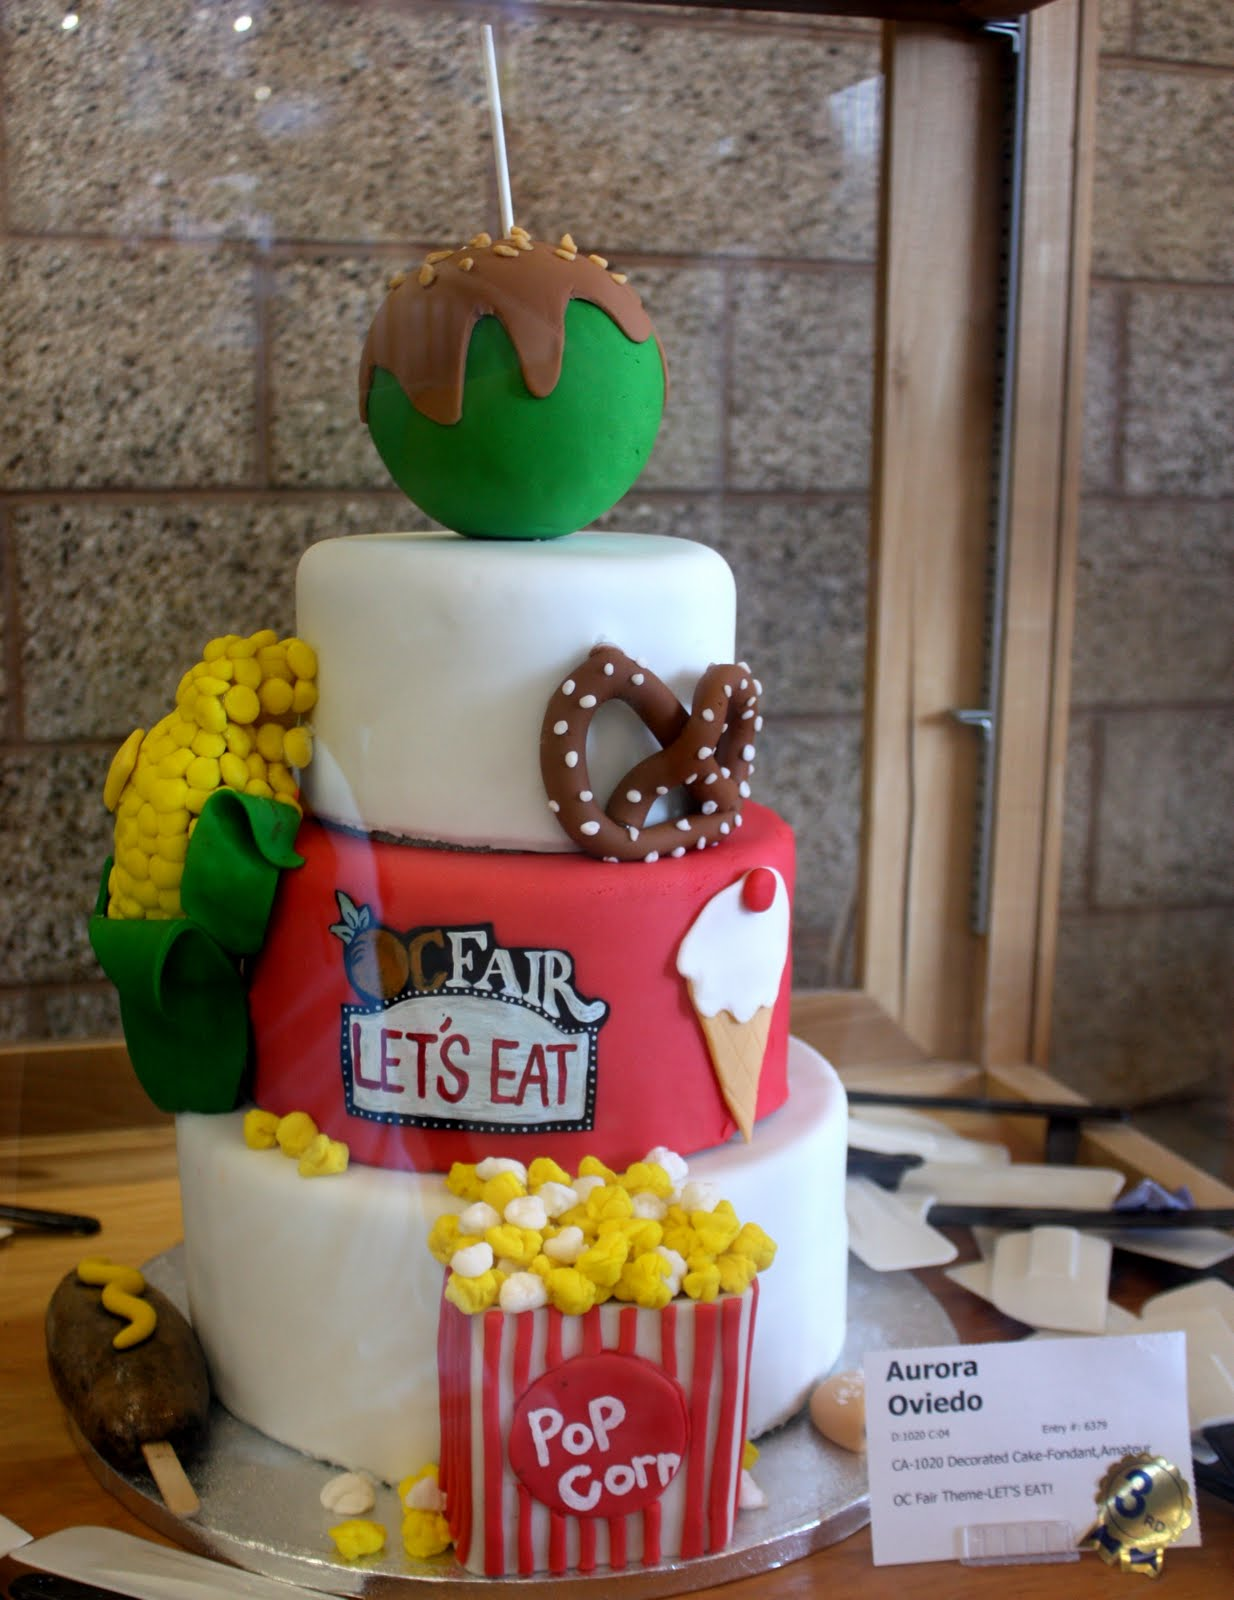 Heres A Taste Of Some The Incredible Creations Made For Cake Design Competition